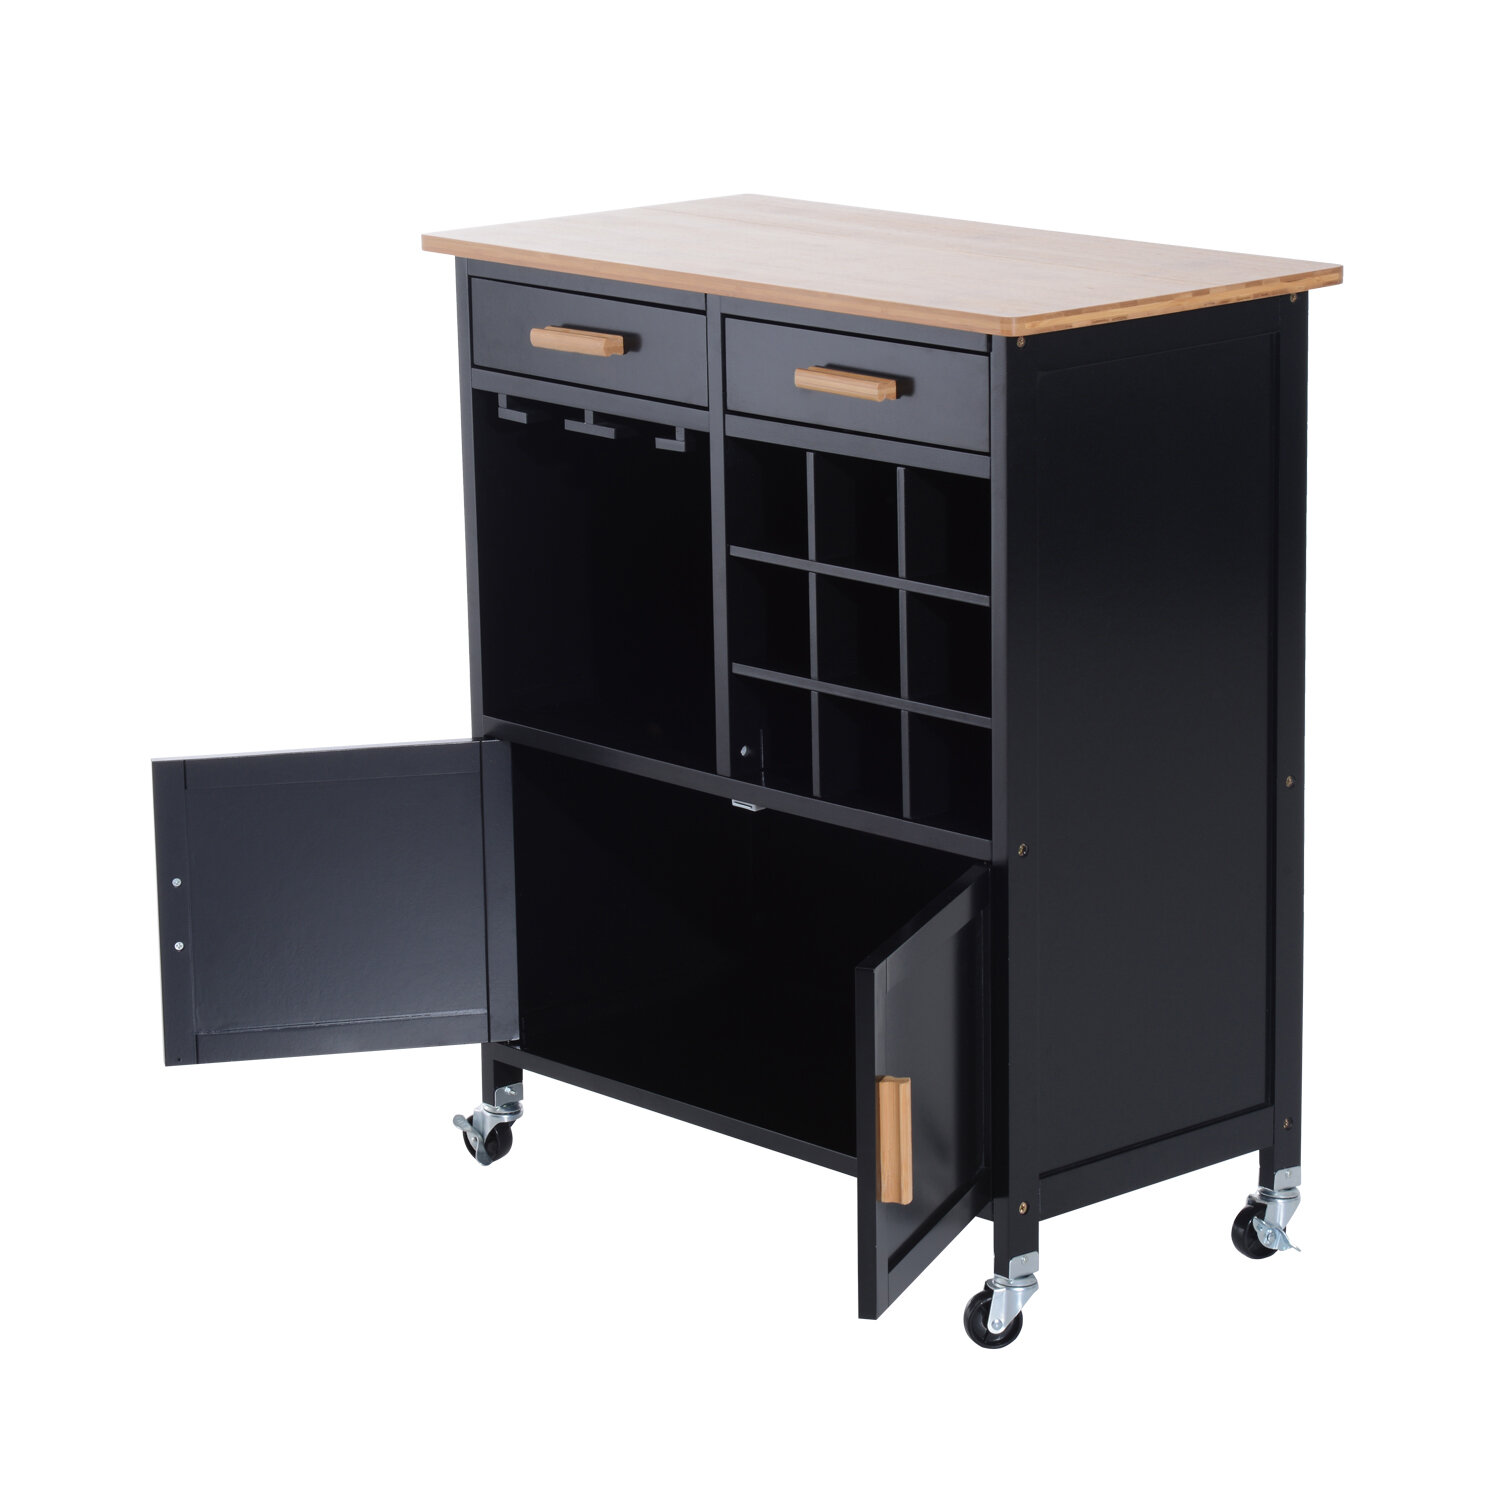 Hilyard Portable Trolley Kitchen Cart With Bamboo Top Storage Cabinet And Wine Rack